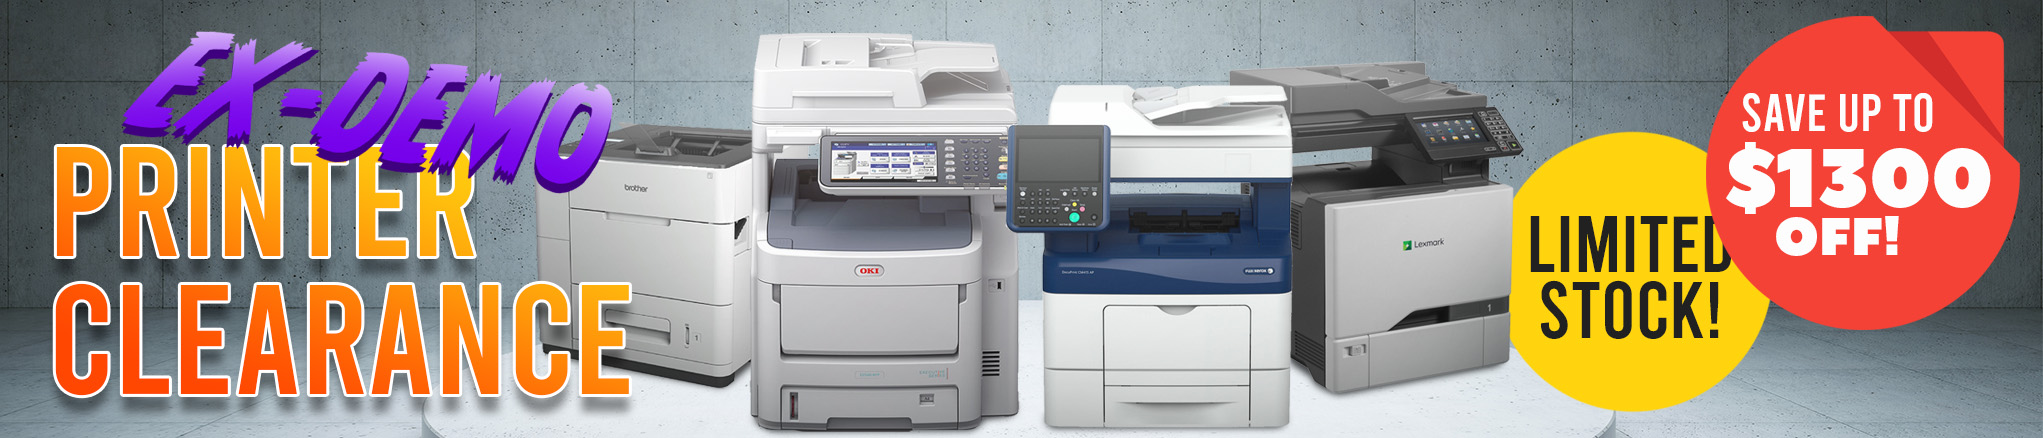 Ex-Demo Clearance Printers: Limited Stock